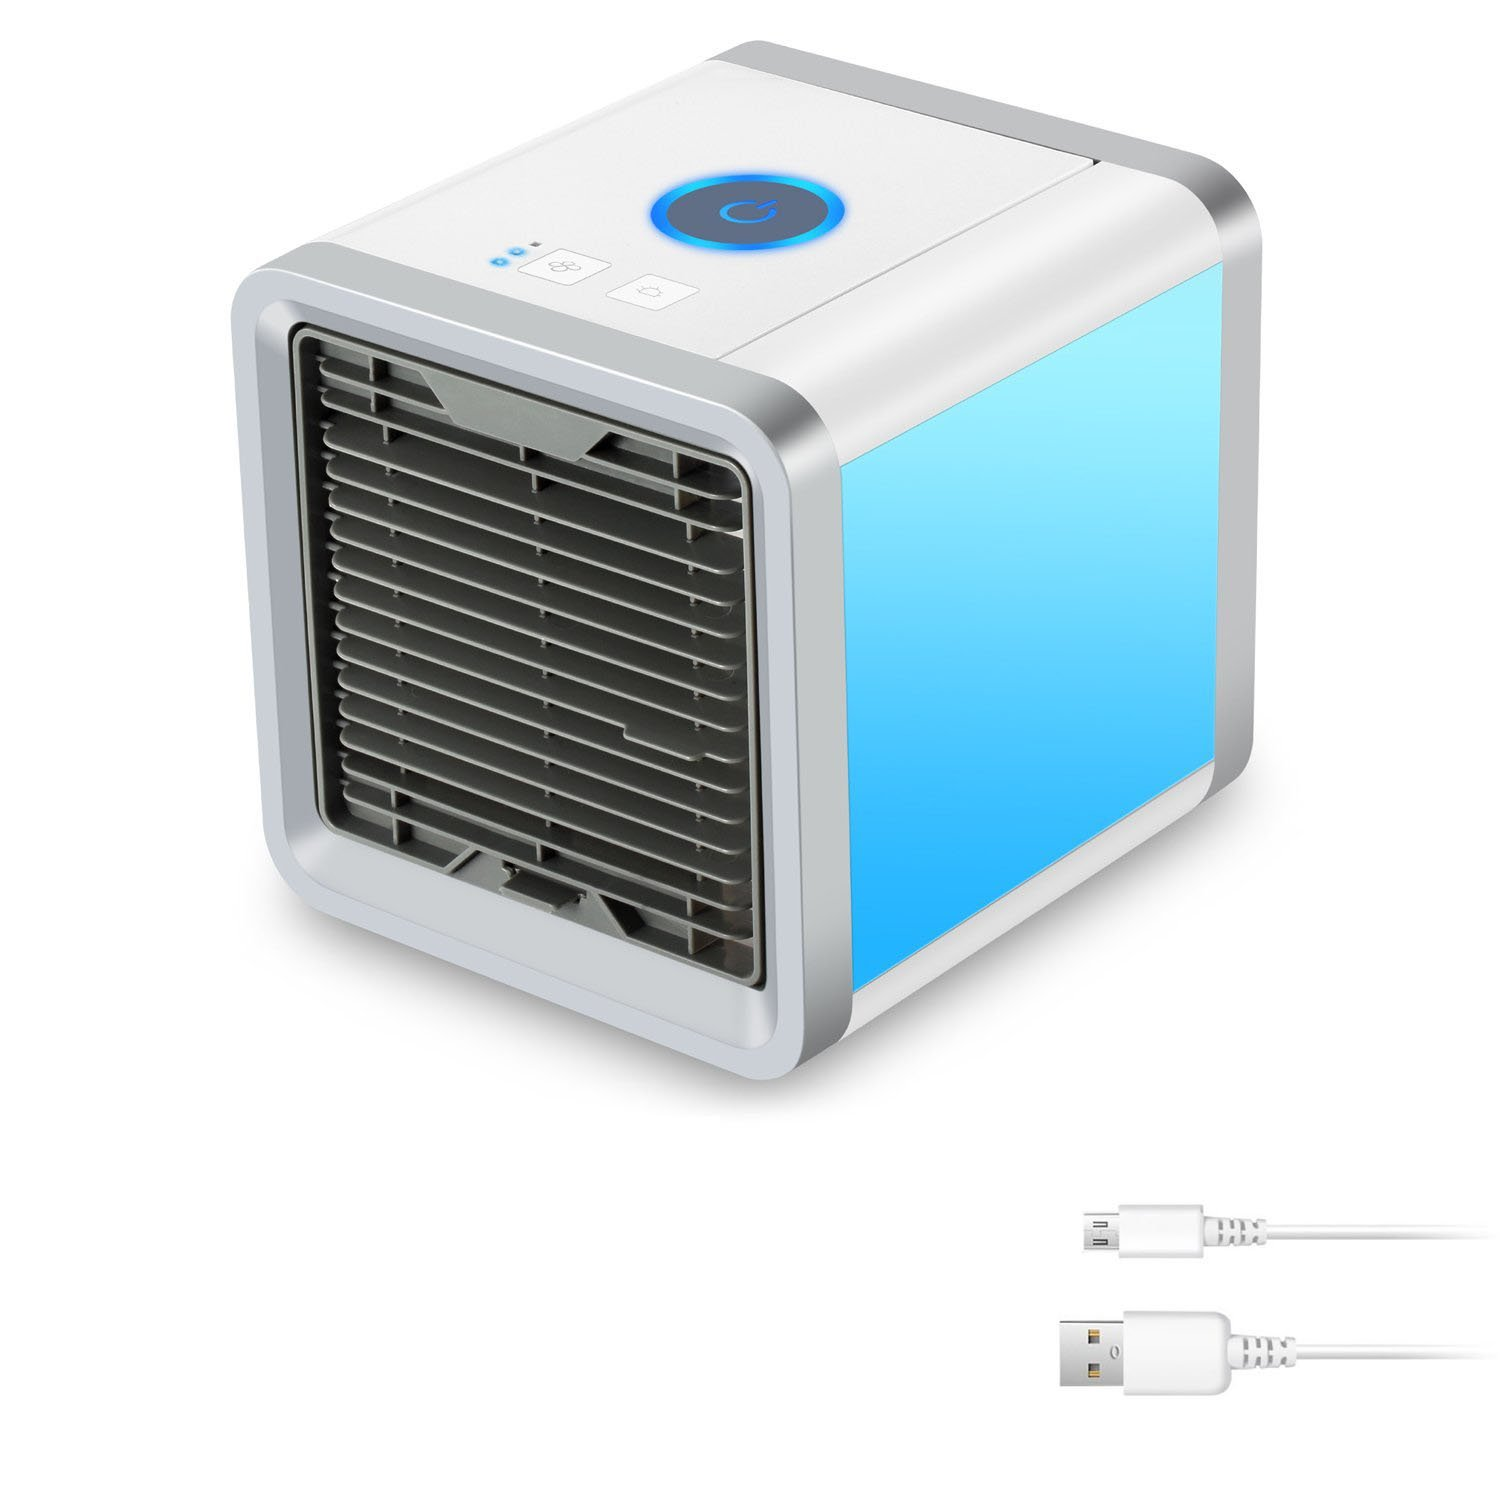 Personal Space Cooler 3-in-1 Evaporative Air Conditioner, Humidifier, Air Purifier, 3 Fan Speeds, 4 Foot Cooling Area, Portable for Bedroom, Work, Outdoors, USB or Conventional for Energy Savings